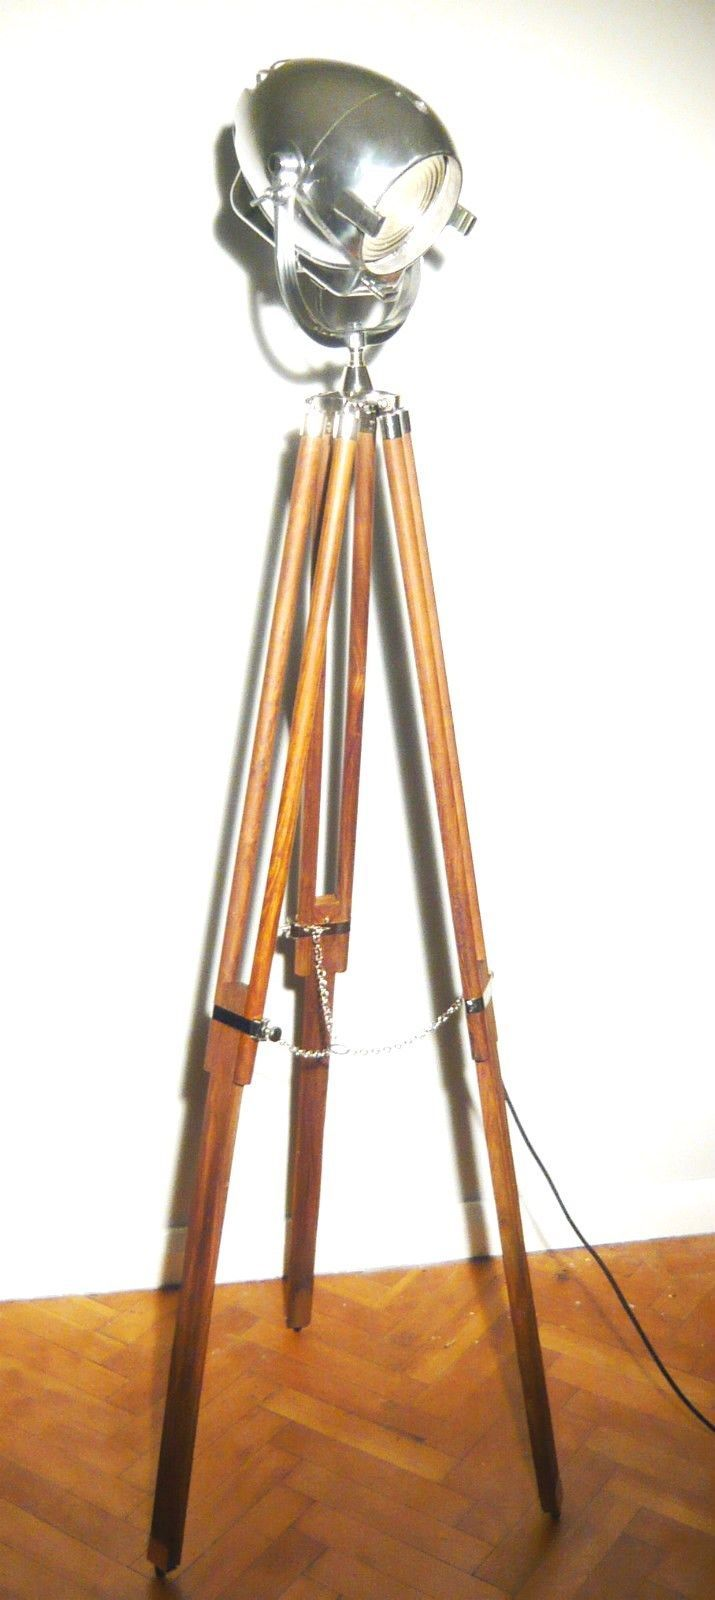 Vintage Antique Theatre Light By Strand Of London Tripod